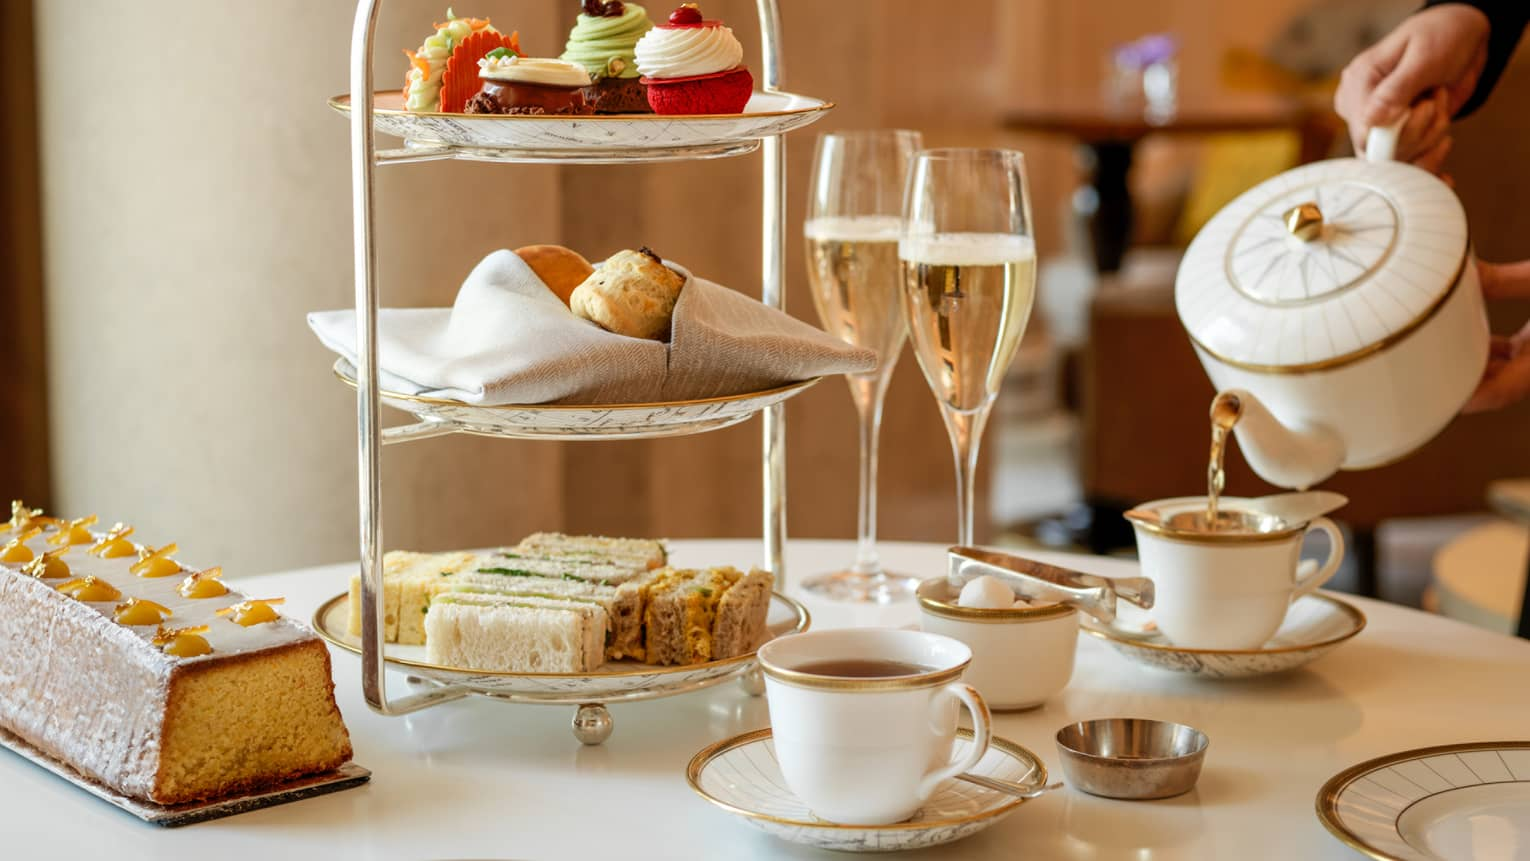 Afternoon tea with pastries and champagne in Rotunda Lounge